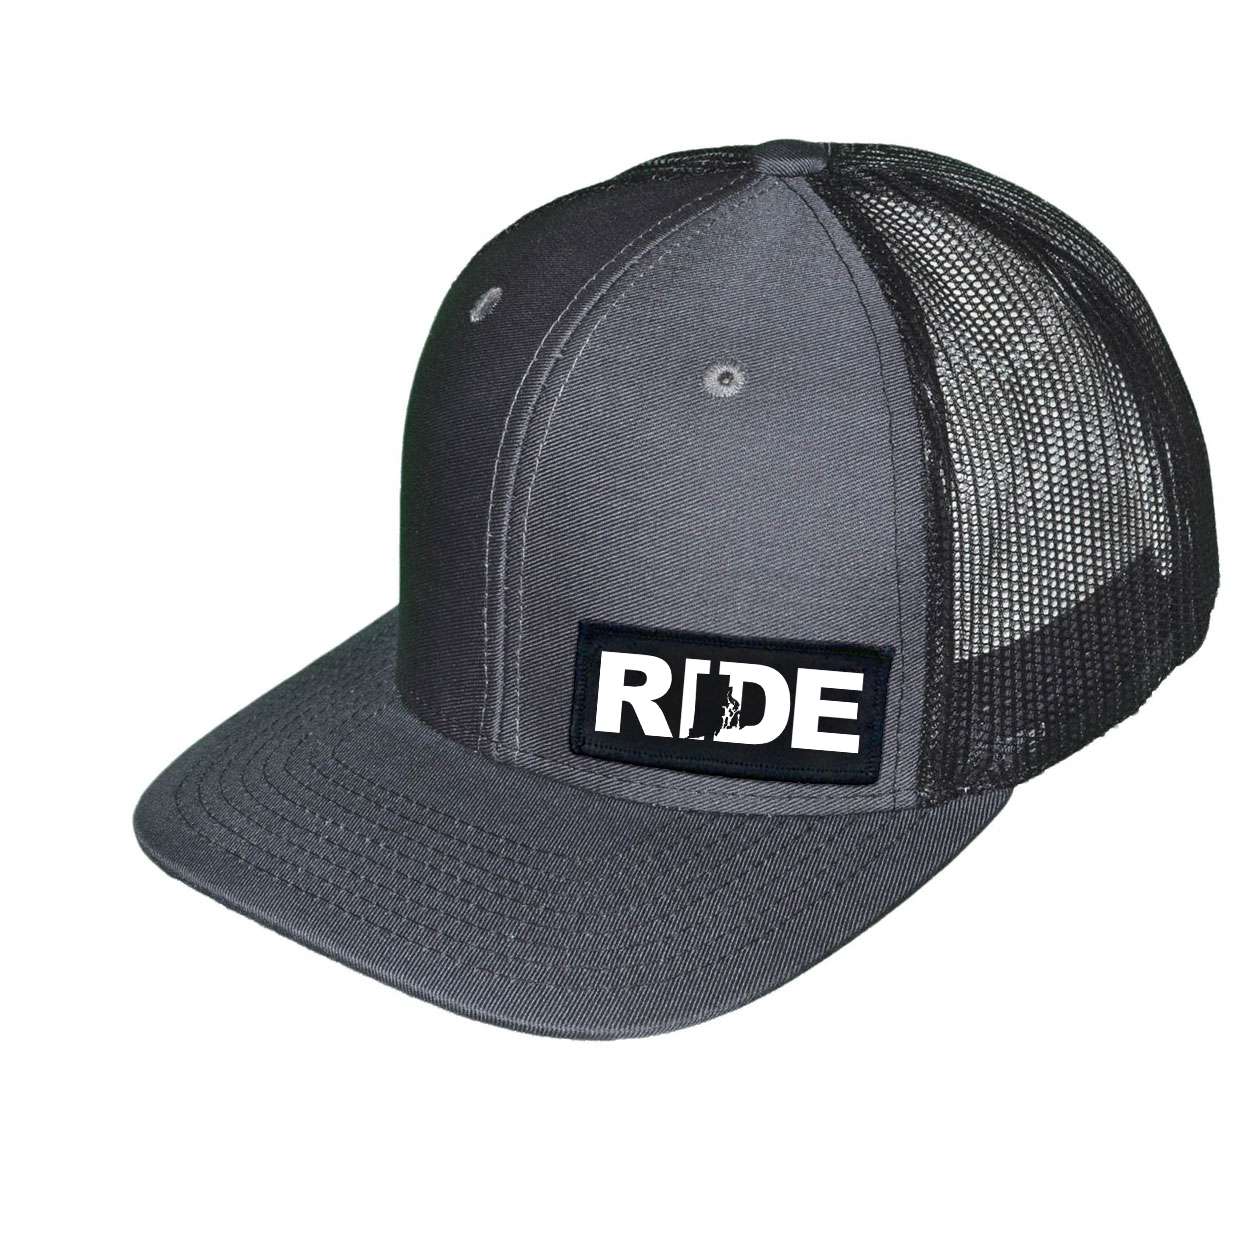 Ride Rhode Island Night Out Woven Patch Snapback Trucker Hat Dark Gray/Black (White Logo)